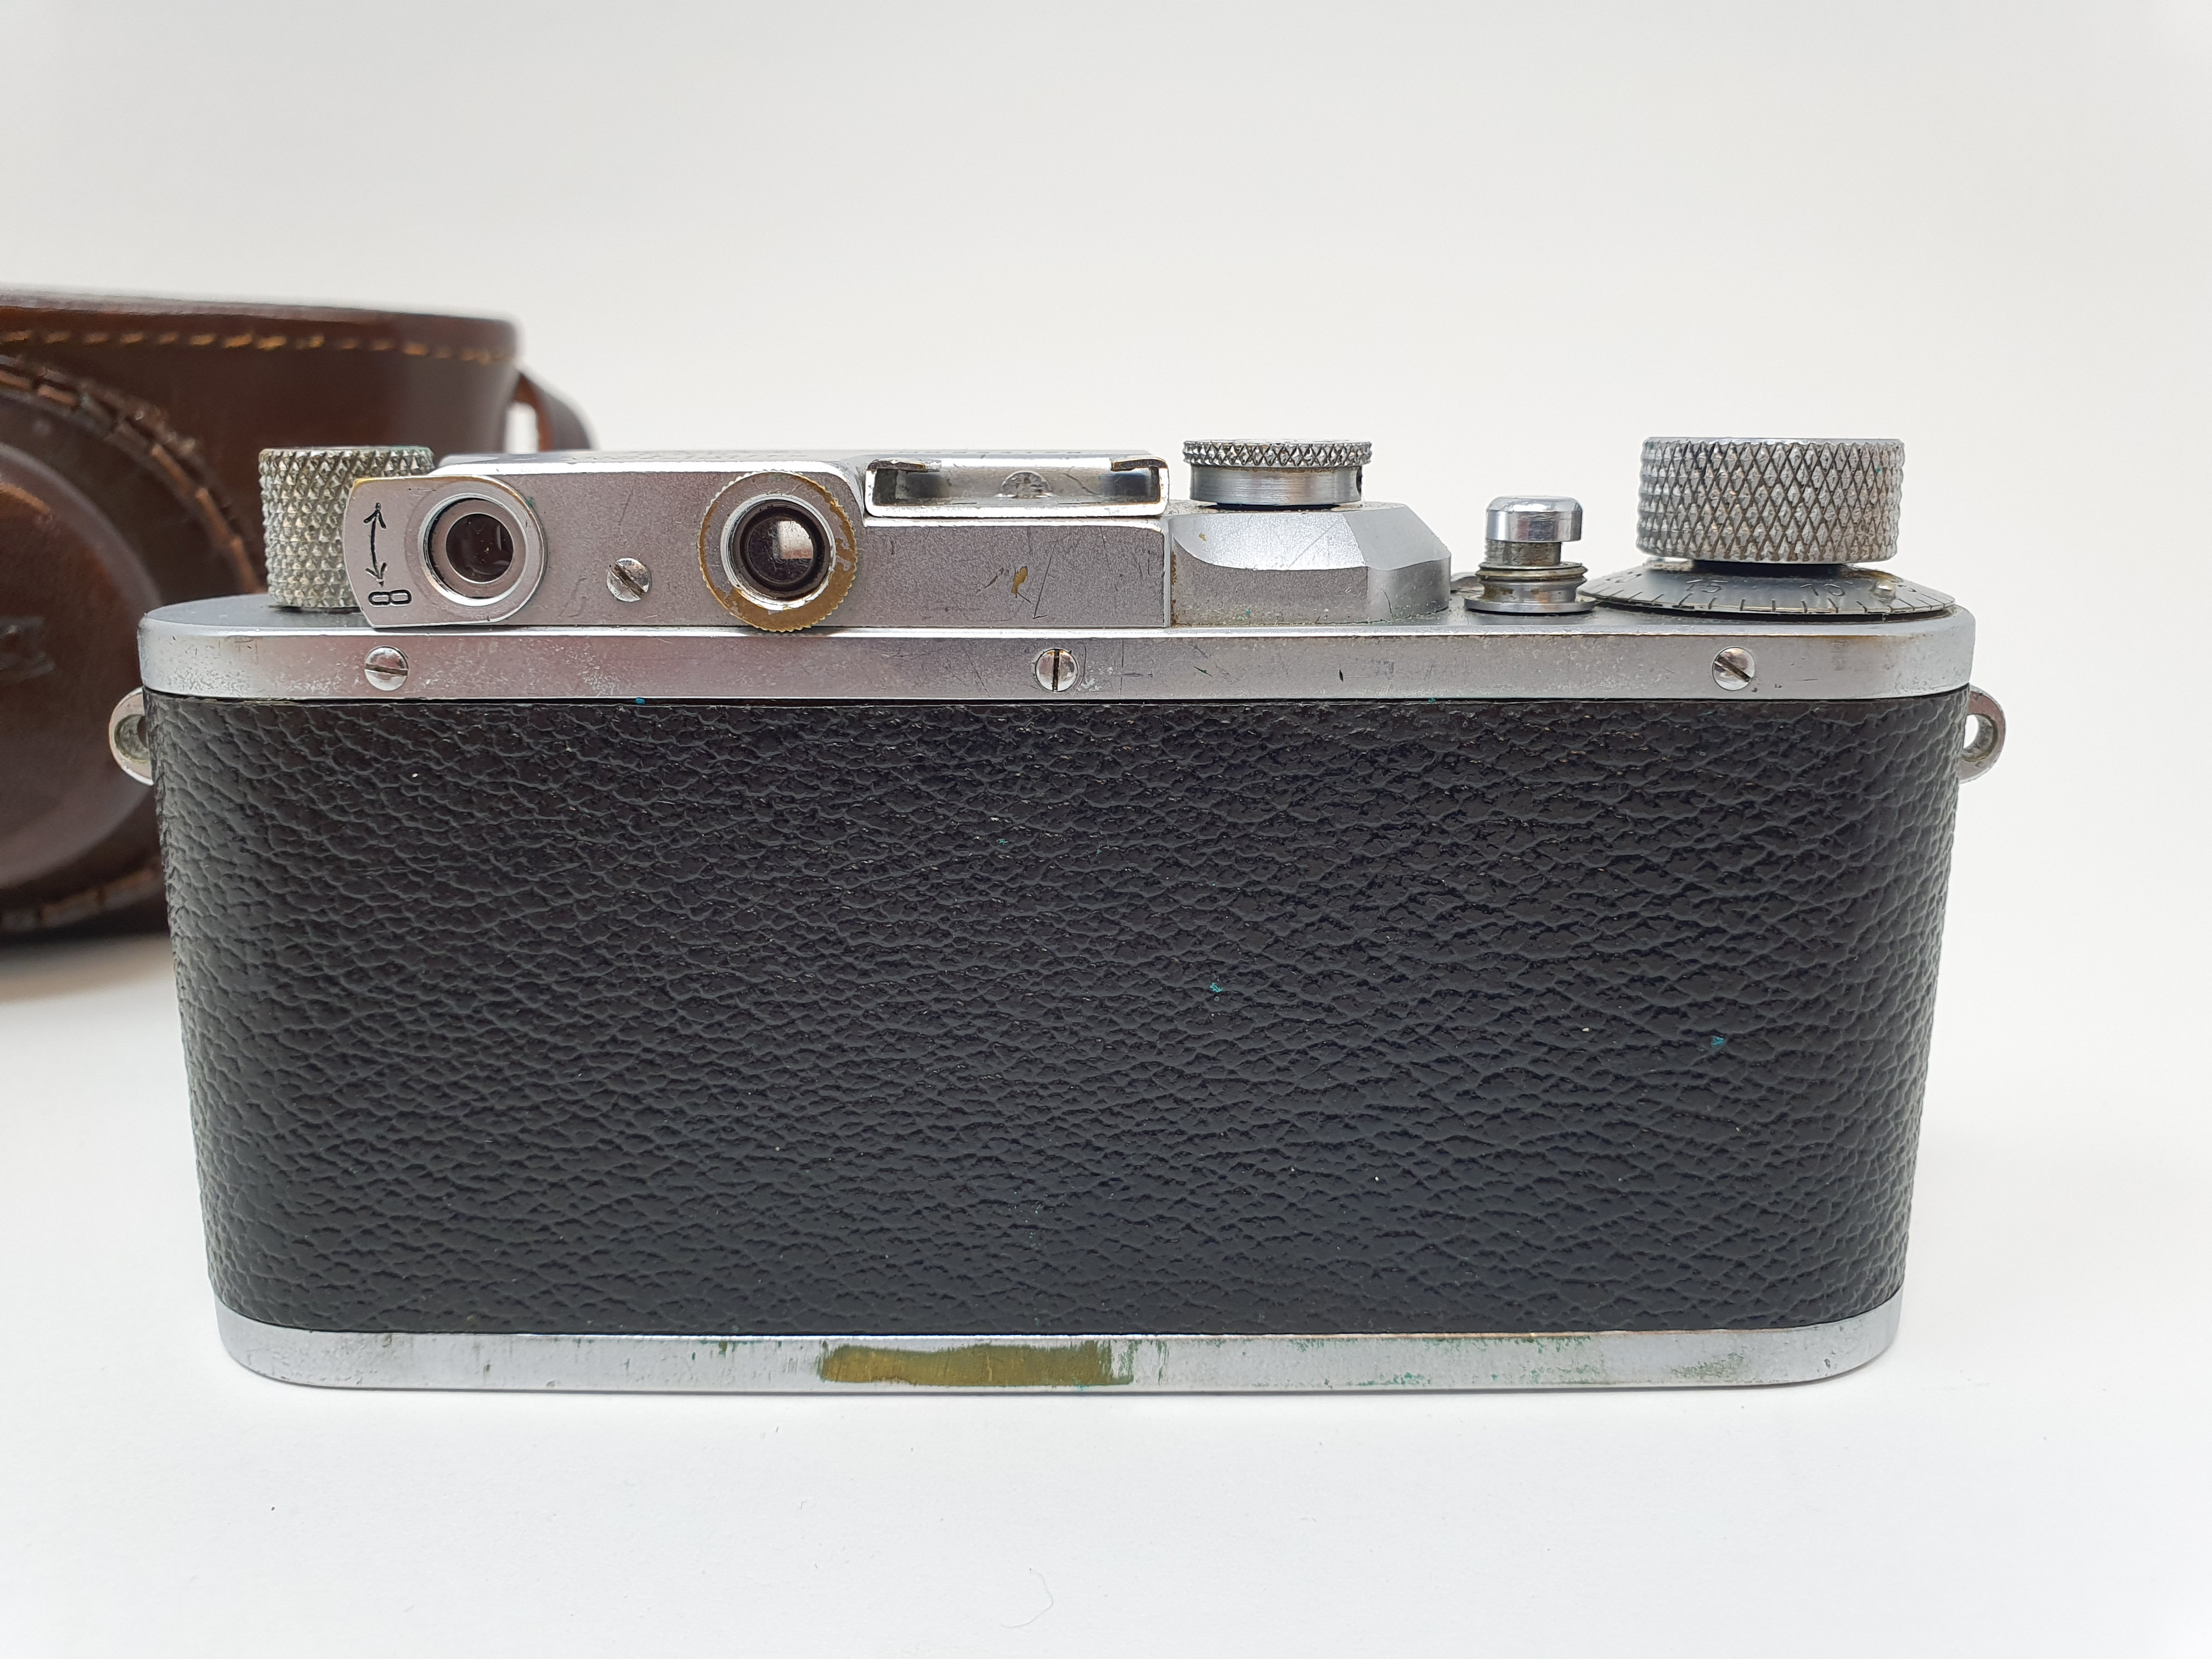 A Leica IIIa camera, serial number 324178, with leather outer case Provenance: Part of a vast single - Image 2 of 4